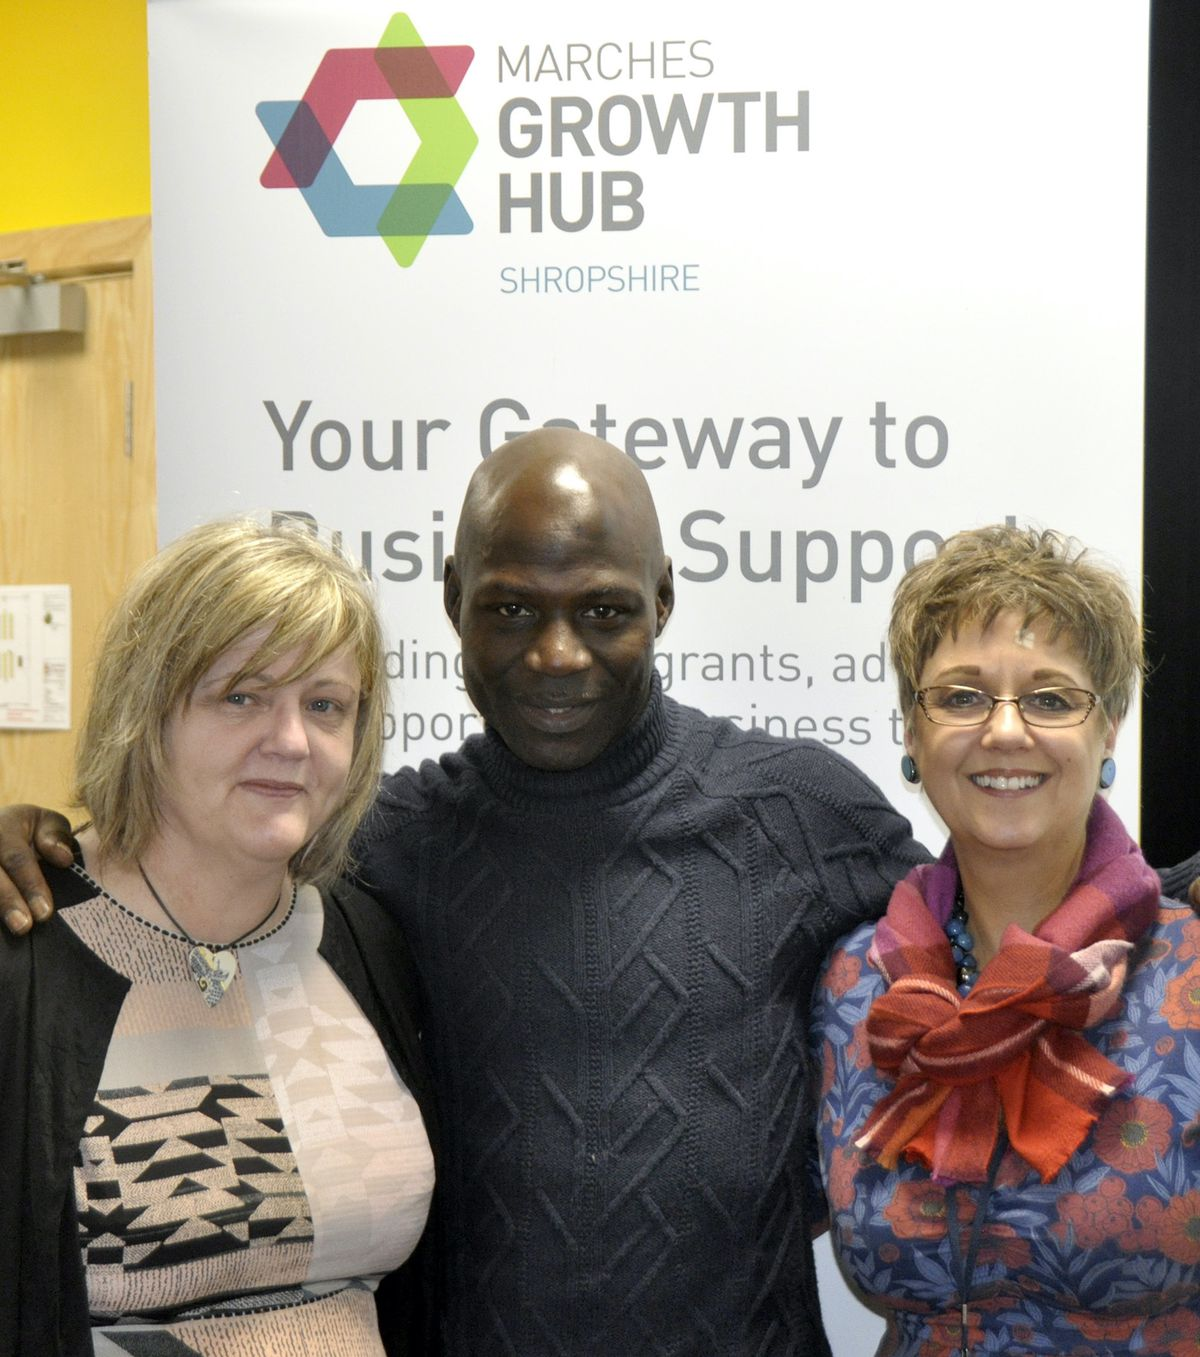 Lucas Karemo with Anna Sadler, left, and Emma Chapman from the Marches Growth Hub Shropshire